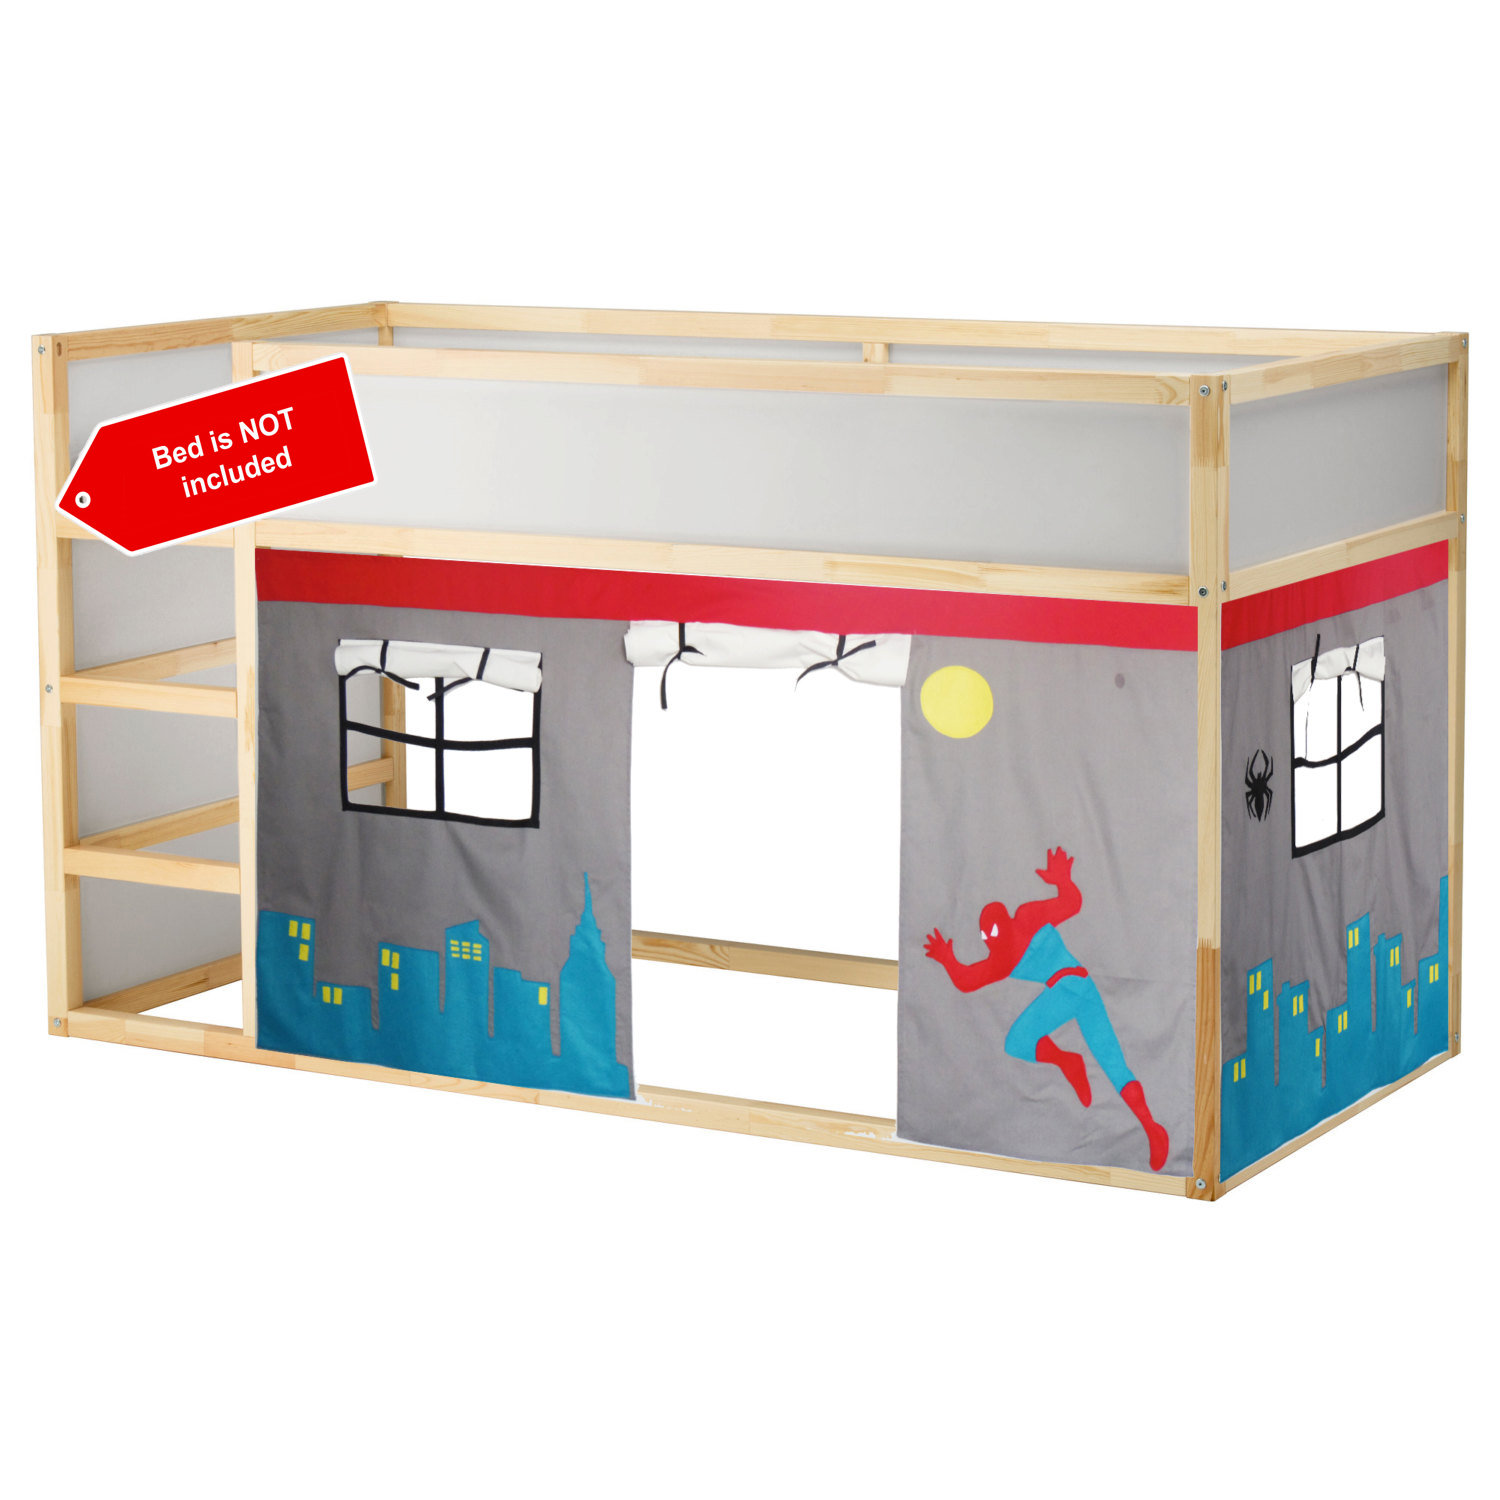 Spiderman Bed Playhouse Bed Tent Loft Bed Curtain Free Design